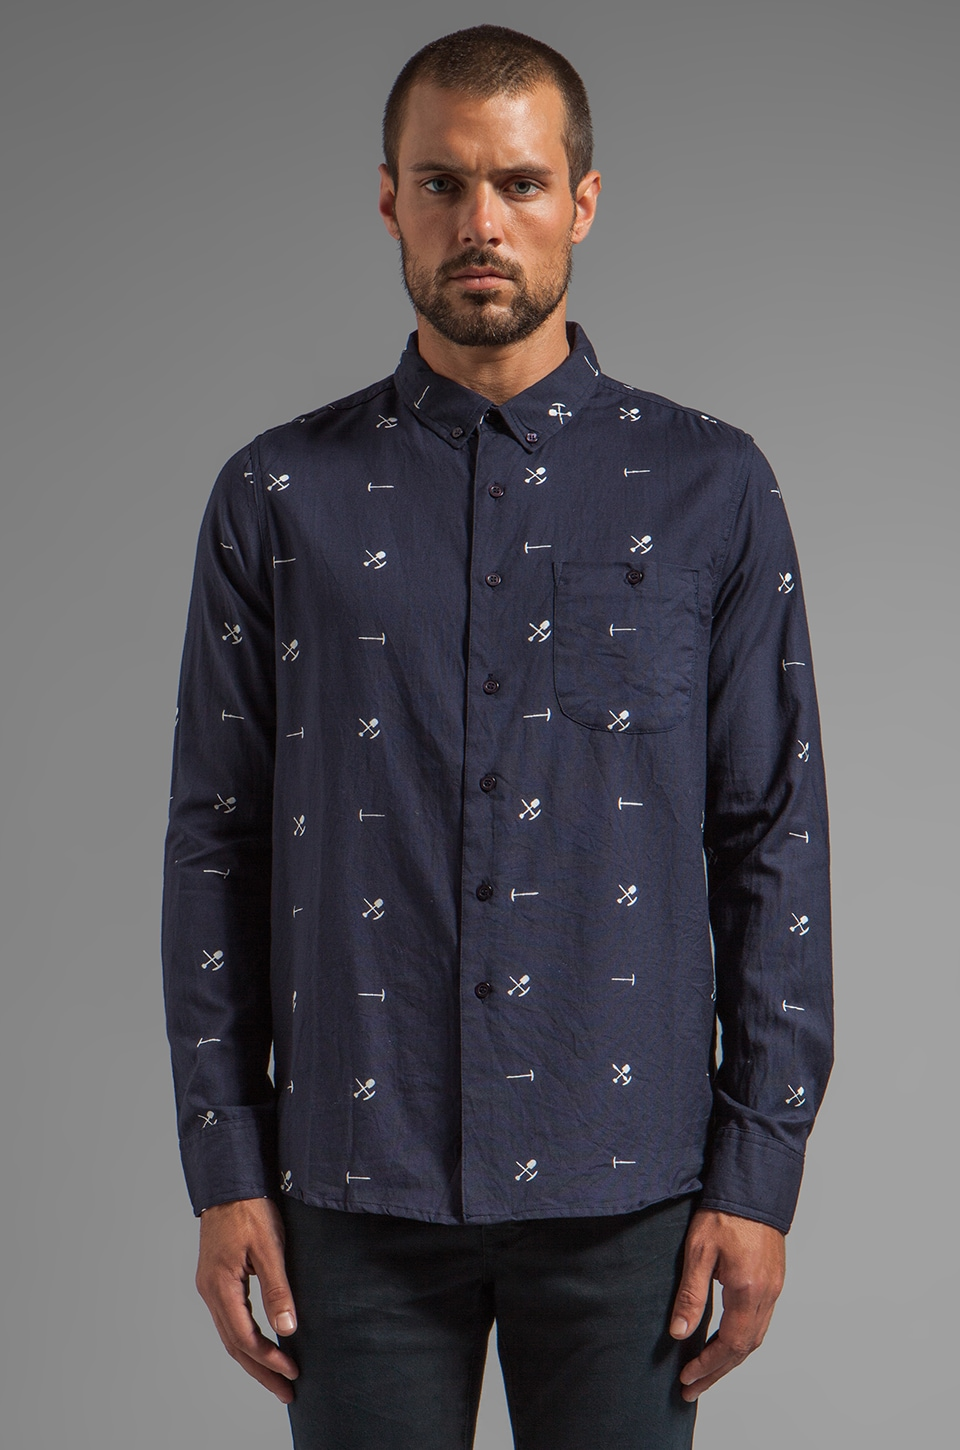 NEUW Goldfields Shirt in Navy/White